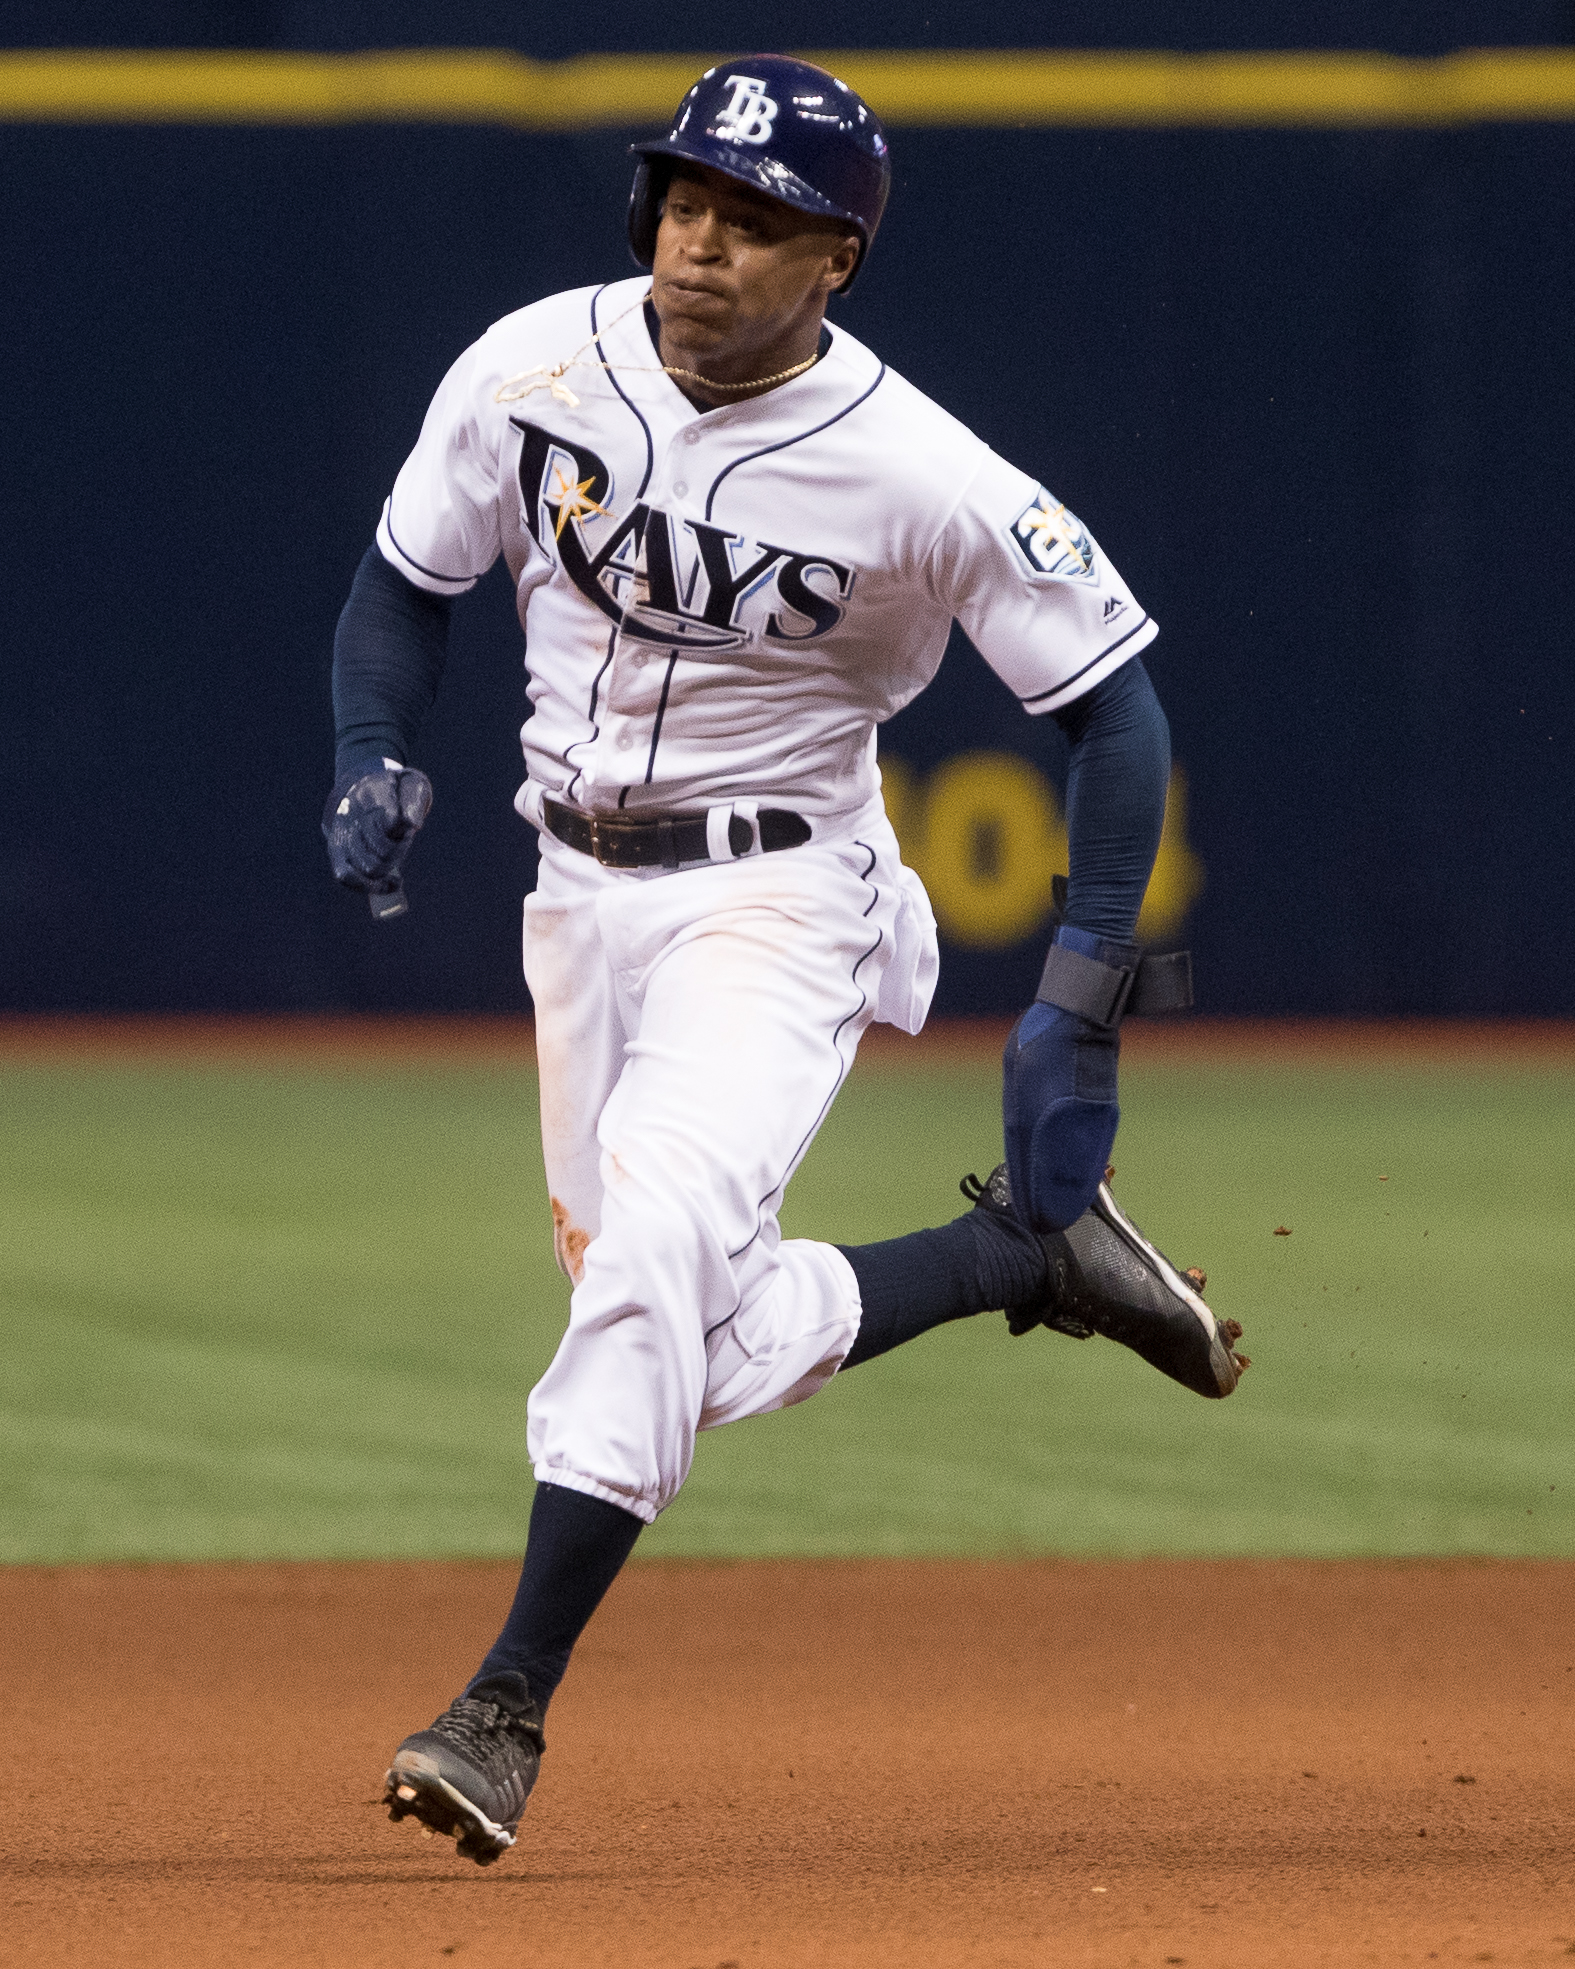 Mallex Smith increased his average to .343./STEVEN MUNCIE